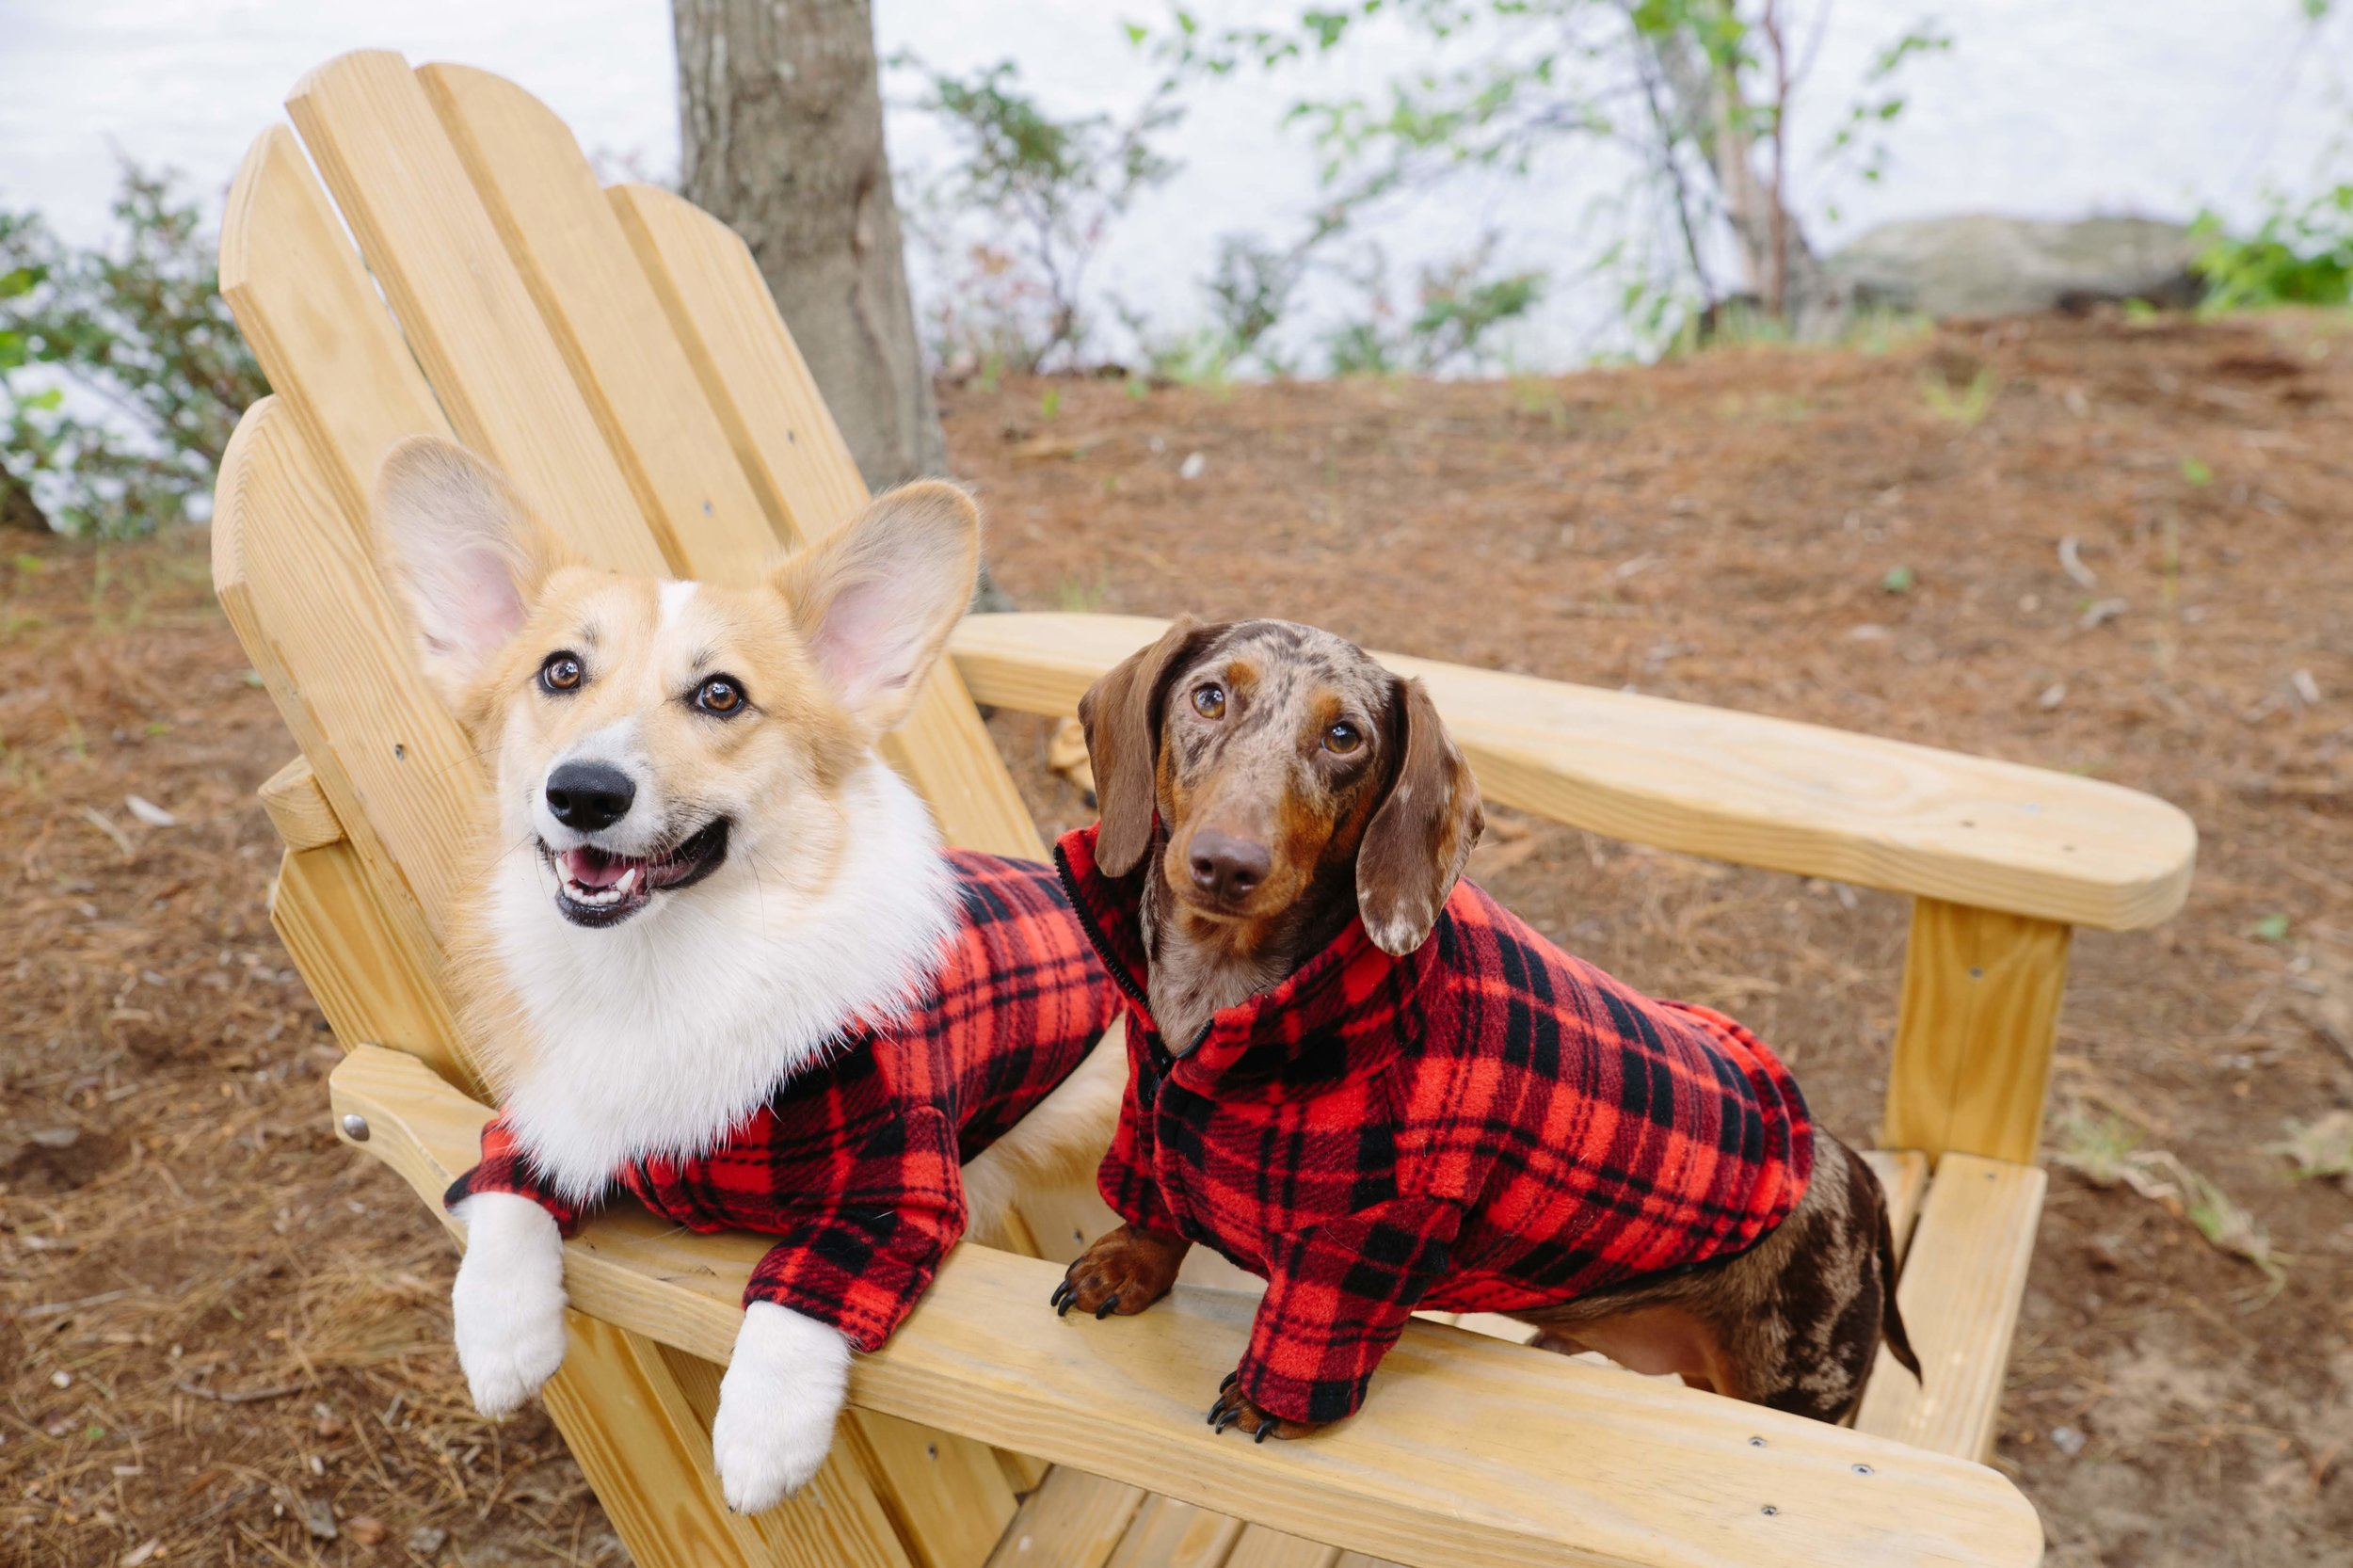 Modeling our Woof Out West fleeces